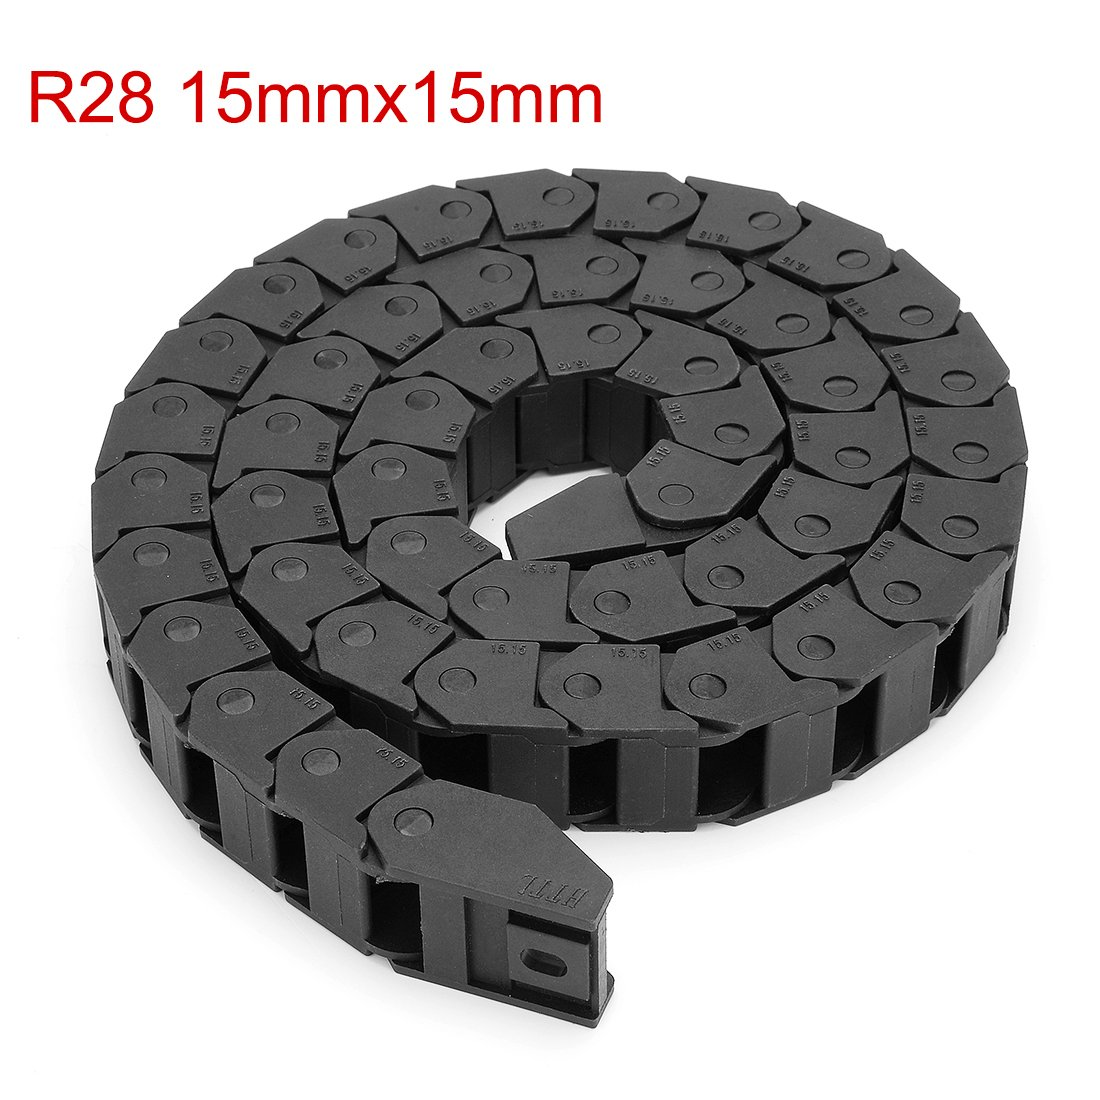 uxcell Drag Chain Cable Carrier Closed Type with End Connectors R28 10X20mm 1.5 Meter Plastic for Electrical CNC Router Machines Black